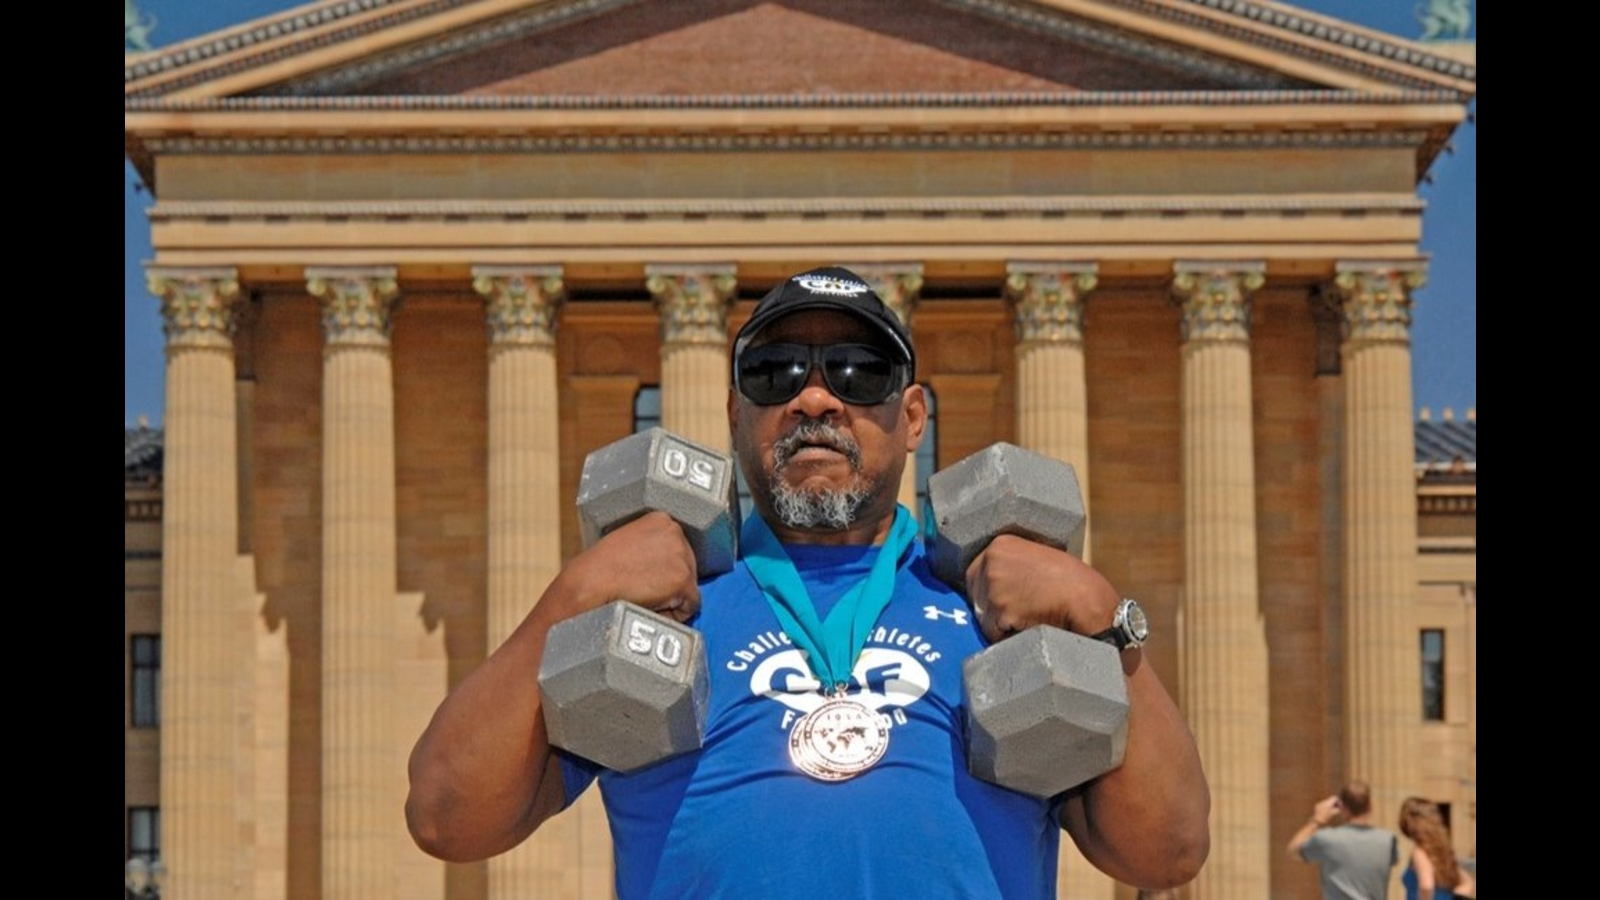 Blind ambition: Philadelphia man overcomes obstacles to become winning powerlifter